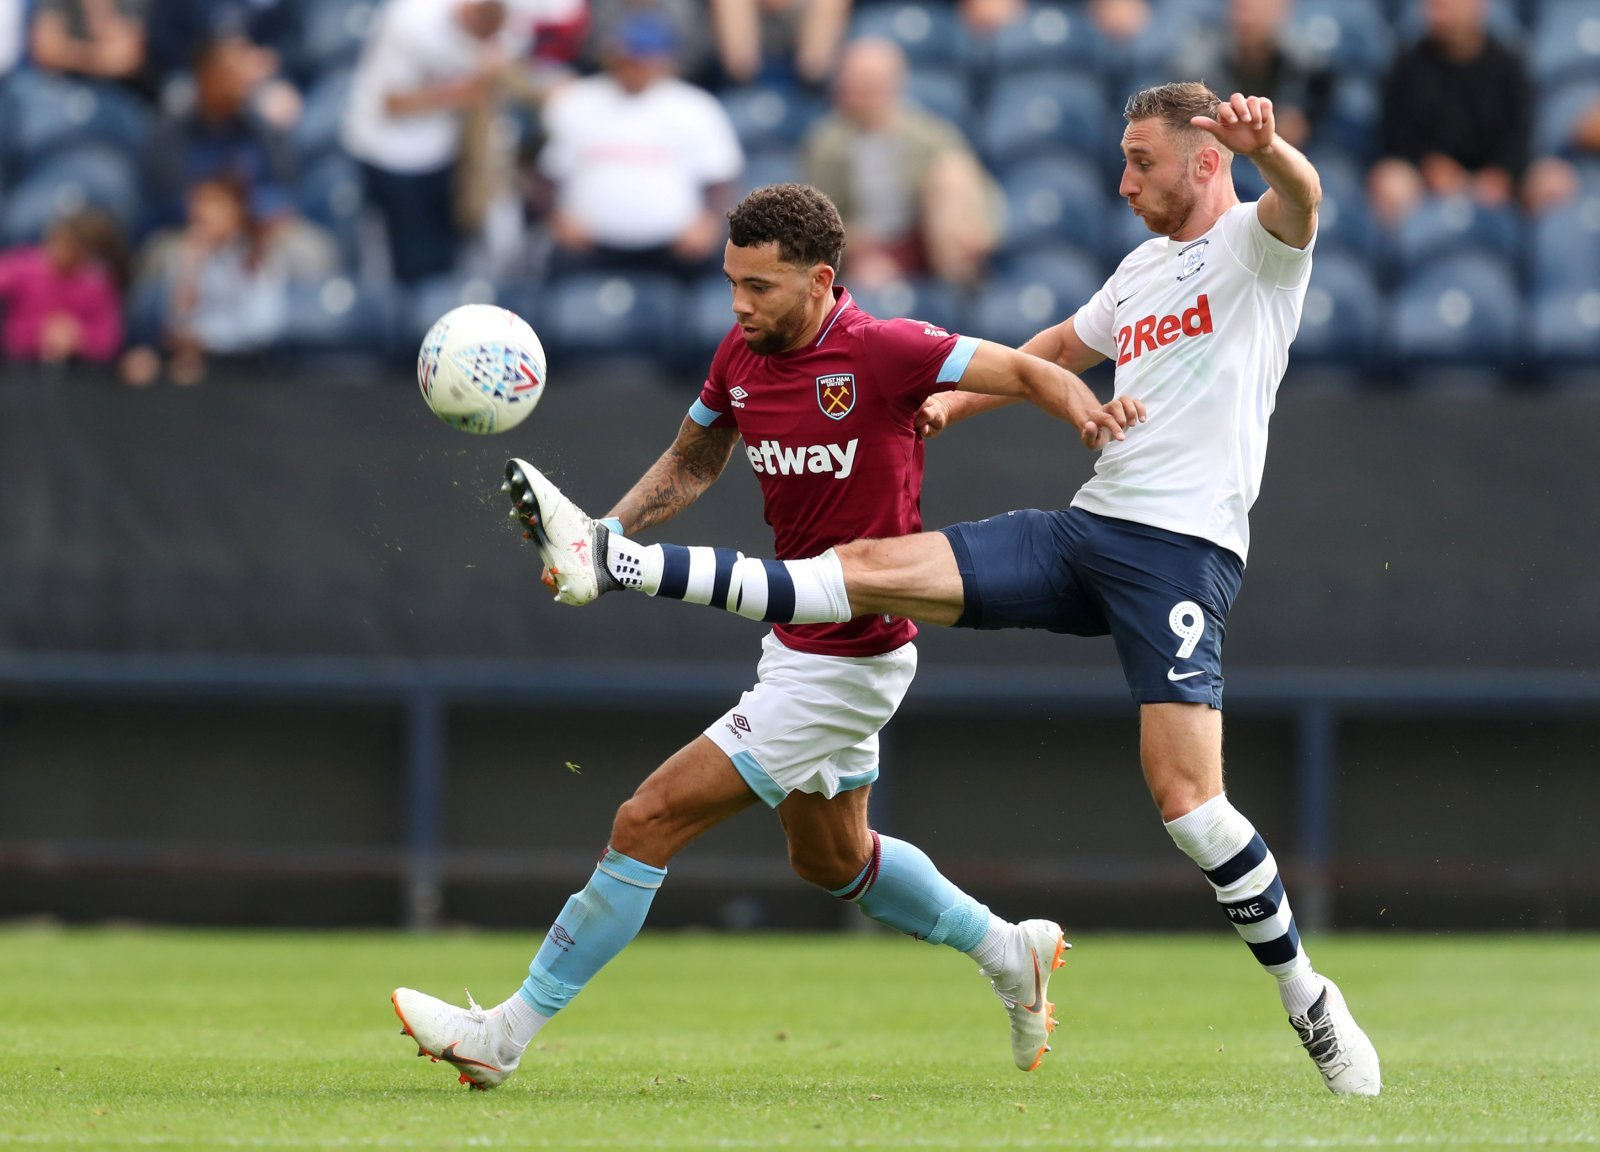 West Ham fans take to Twitter to defend Ryan Fredericks after tough Palace clash